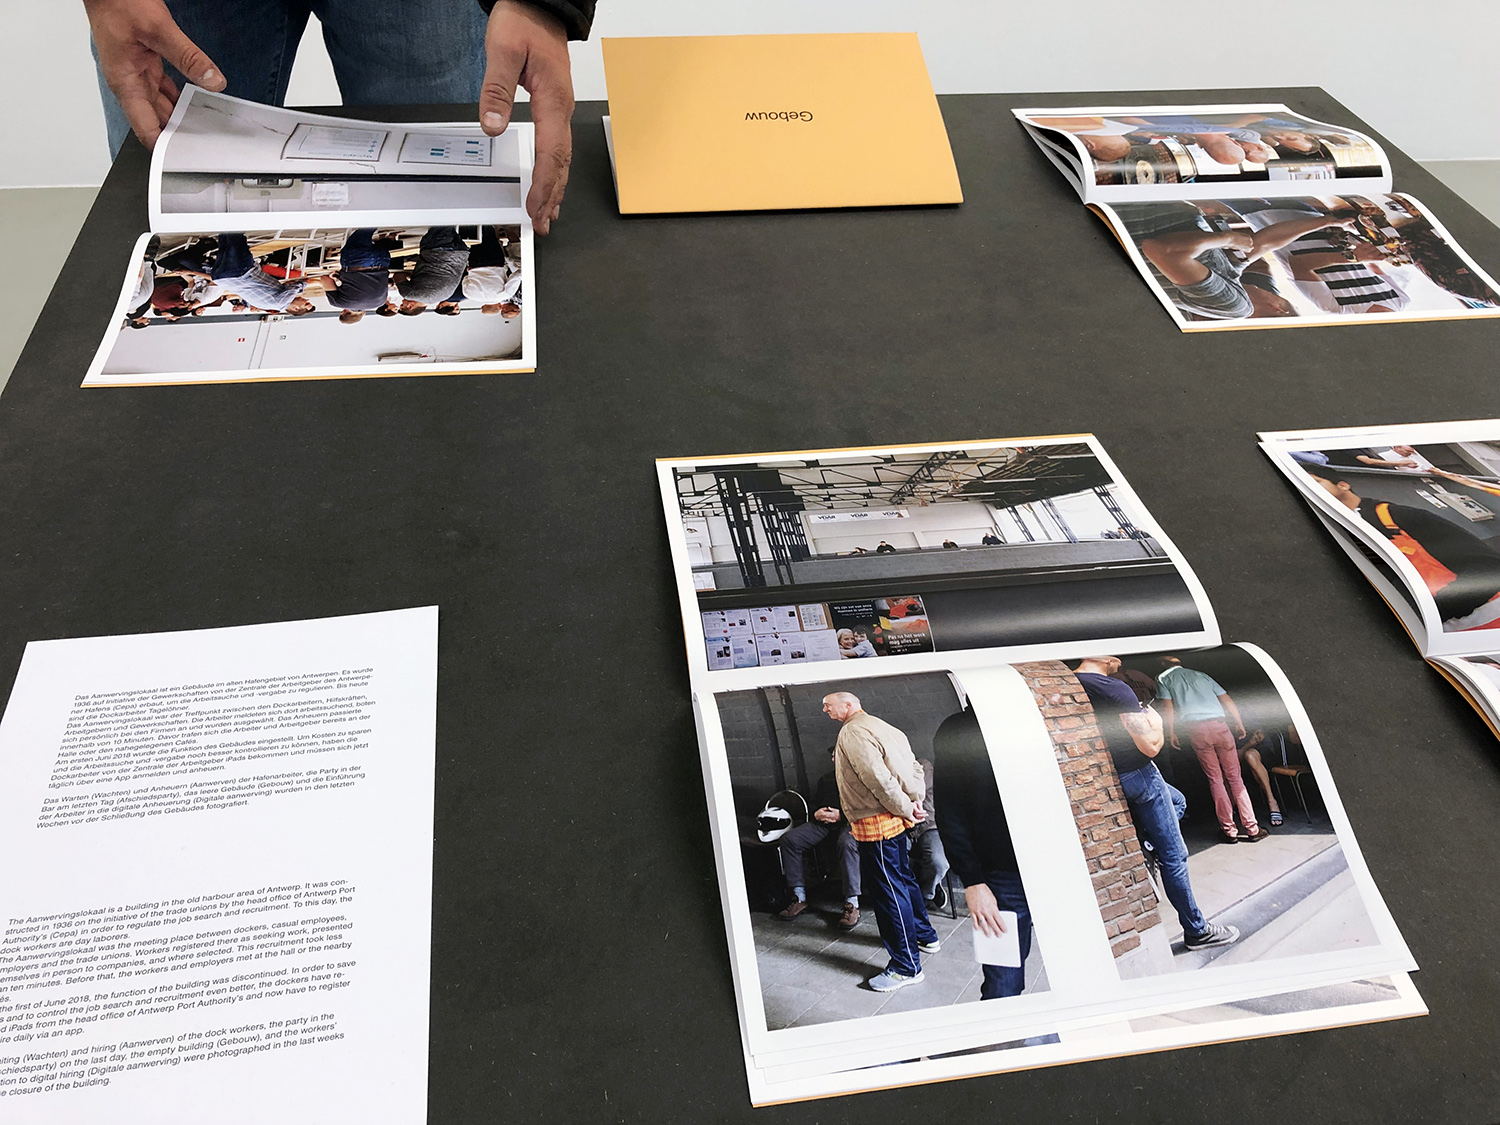 Exhibition view Tender Buttons, curated by Nadja Quante, Anna Voswinckel, Künstlerhaus Bremen 2019<br />